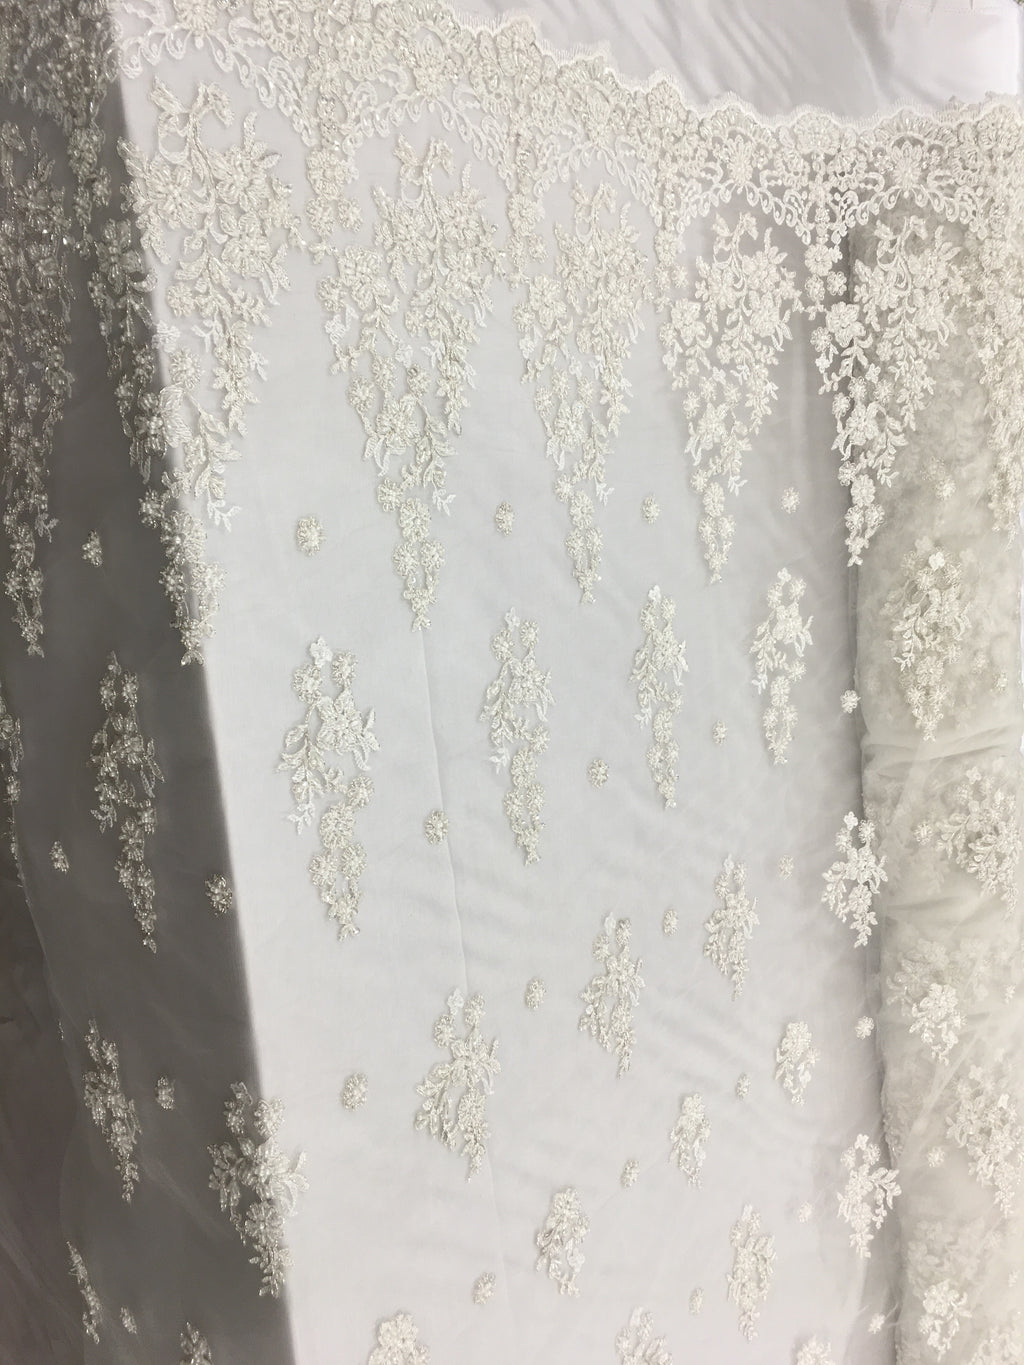 Bridal Beaded Fabric By The Yard Ivory Lace Heavy Beads For Bridal Veil Flower Mesh Dress Top Wedding Decoration